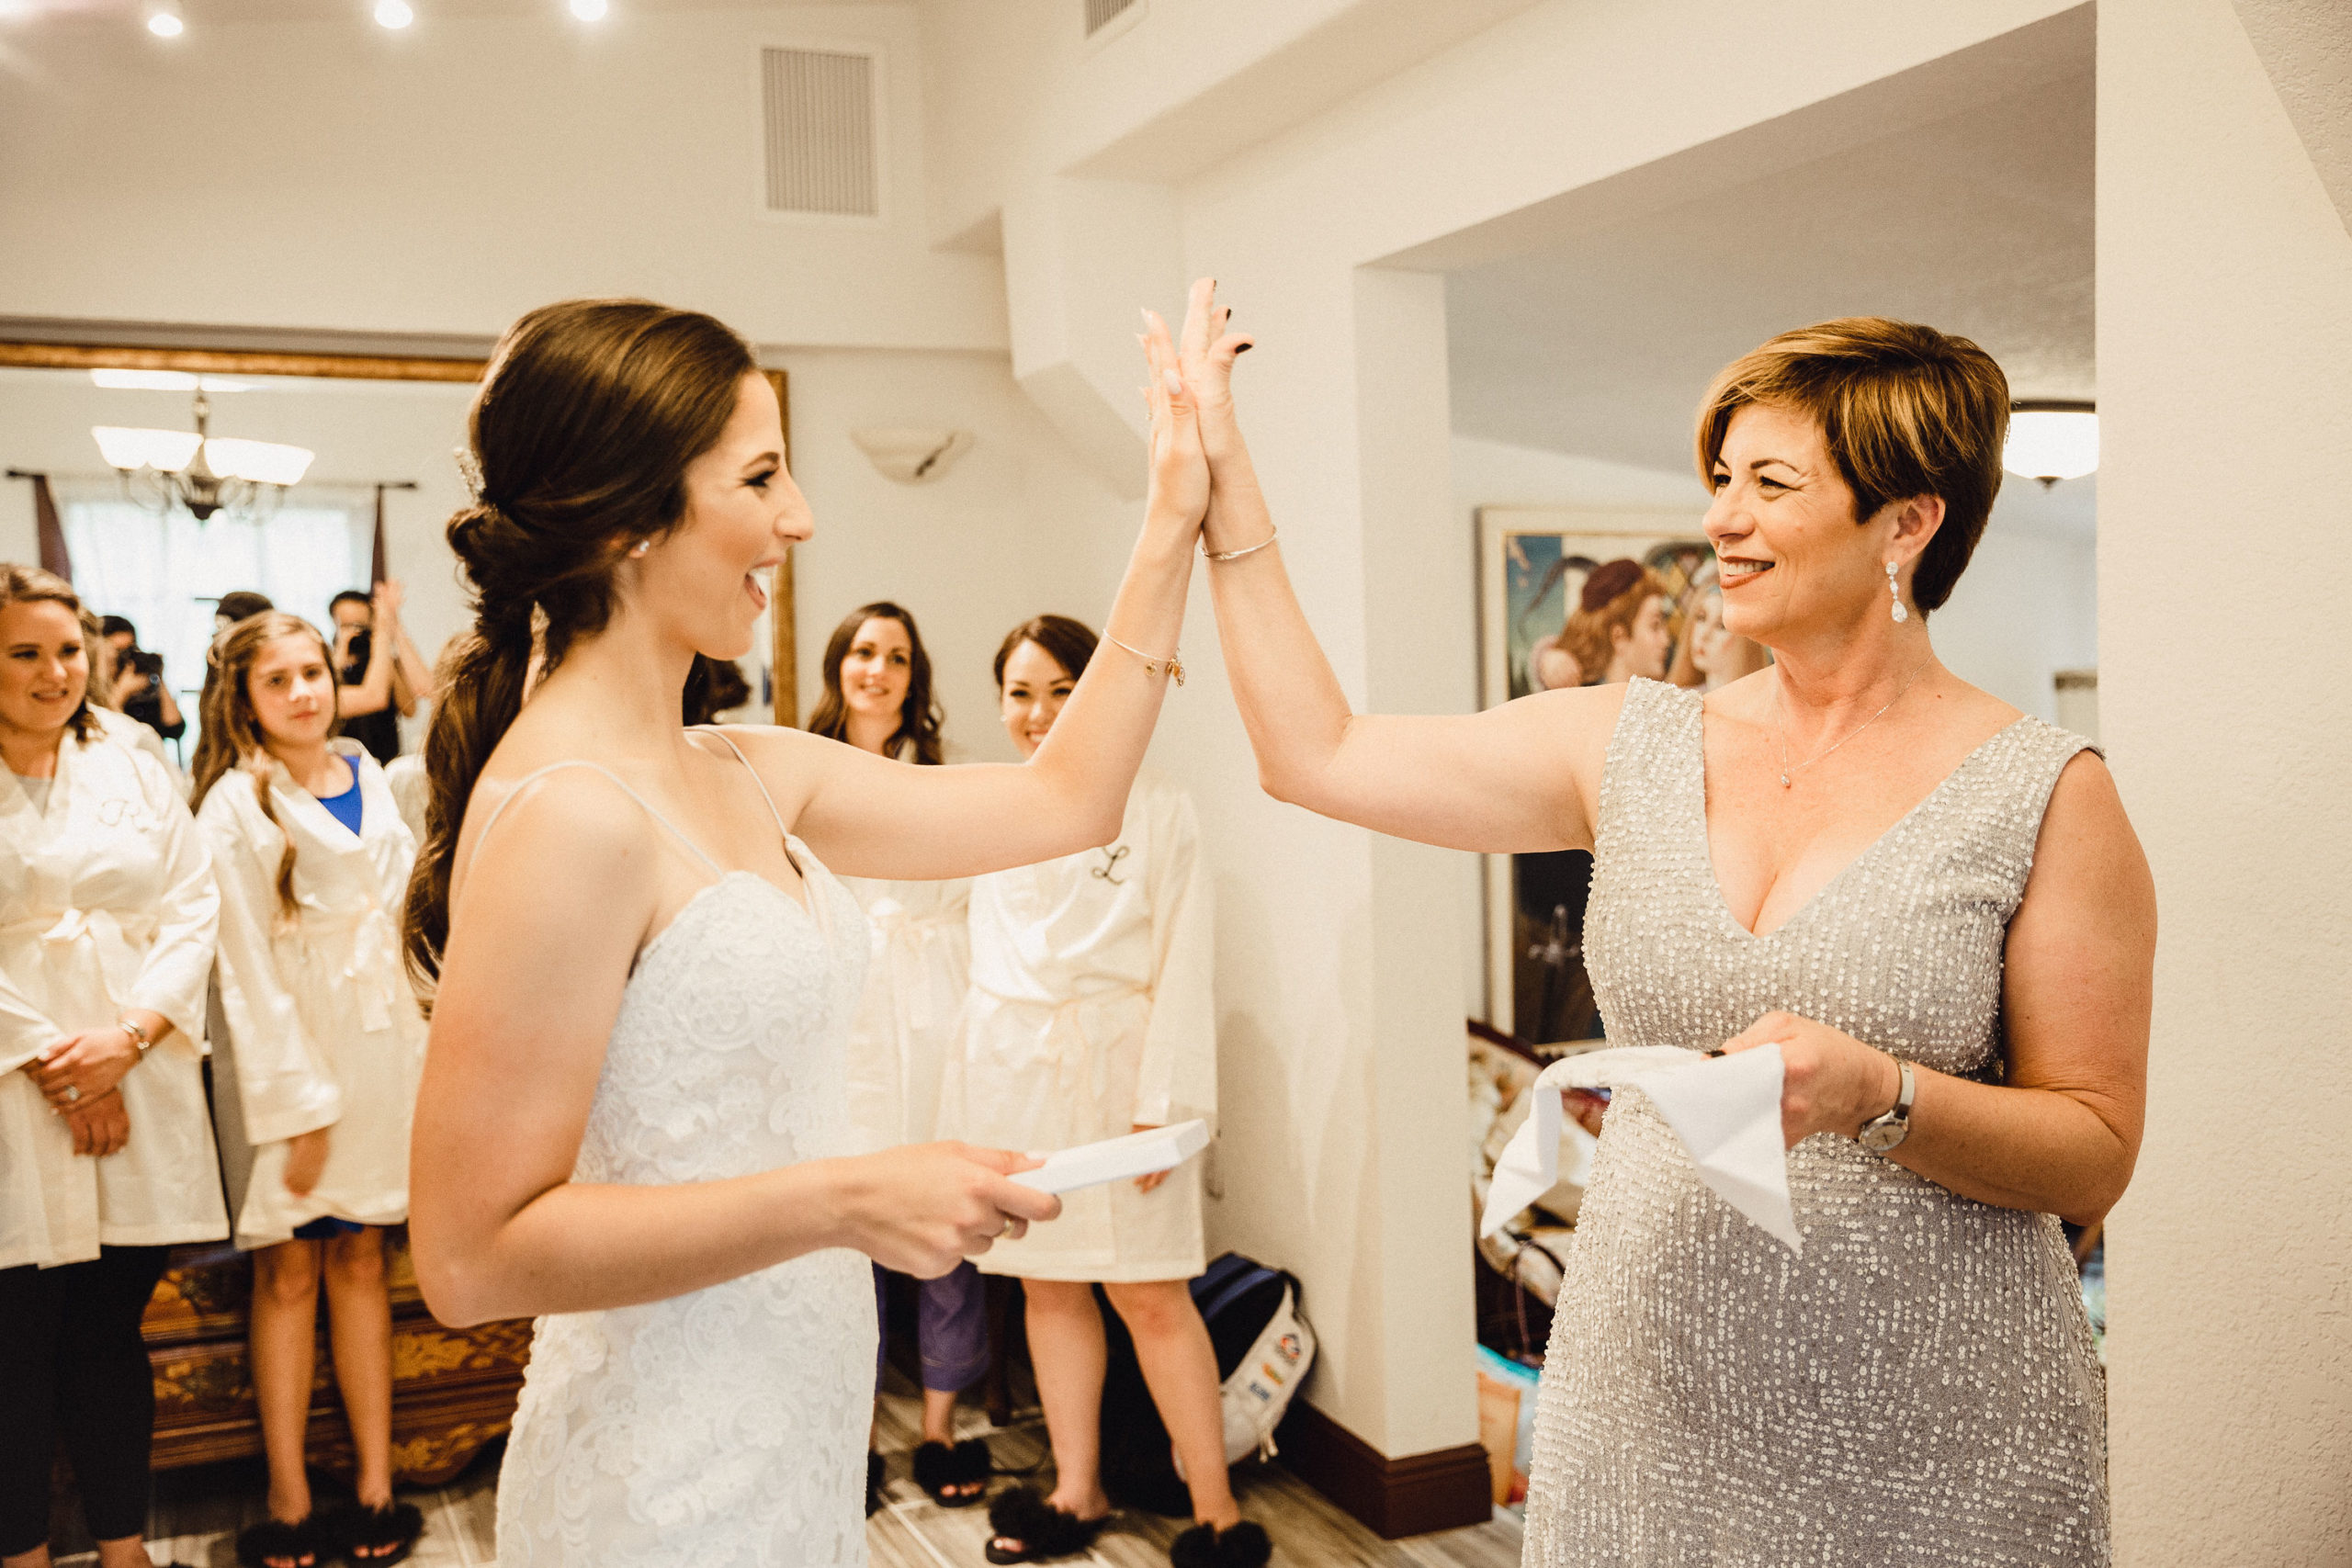 6 Great Ways to Involve Loved Ones in Your Wedding